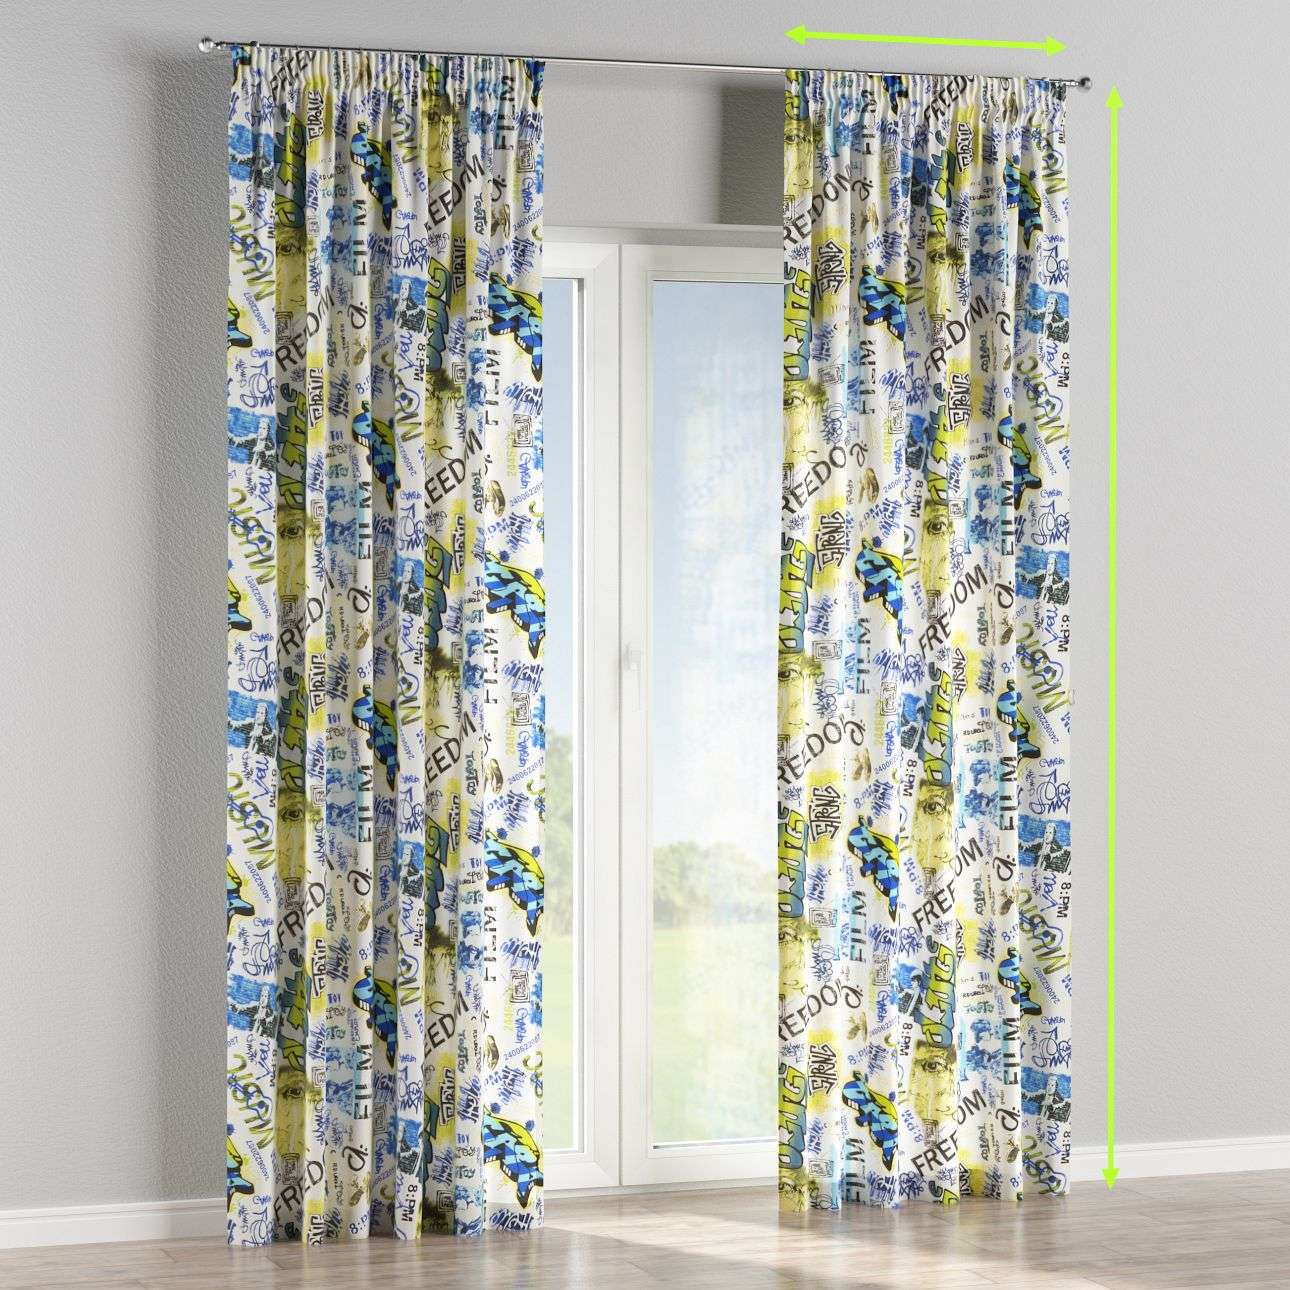 Pencil pleat lined curtains in collection Freestyle, fabric: 135-08